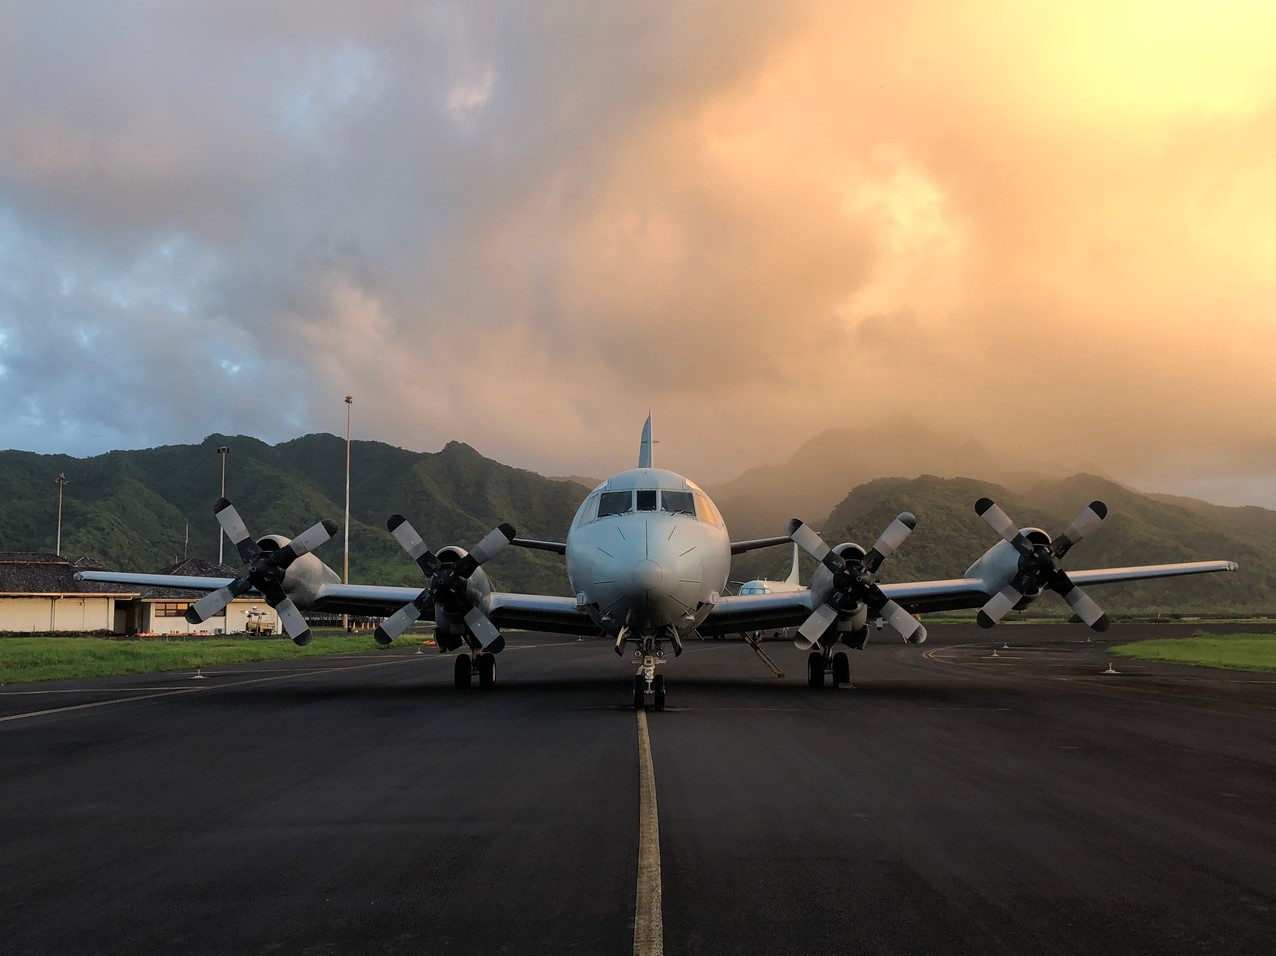 MHD-ROCKLAND Services - P-3C Aircraft on runway with mountains in background